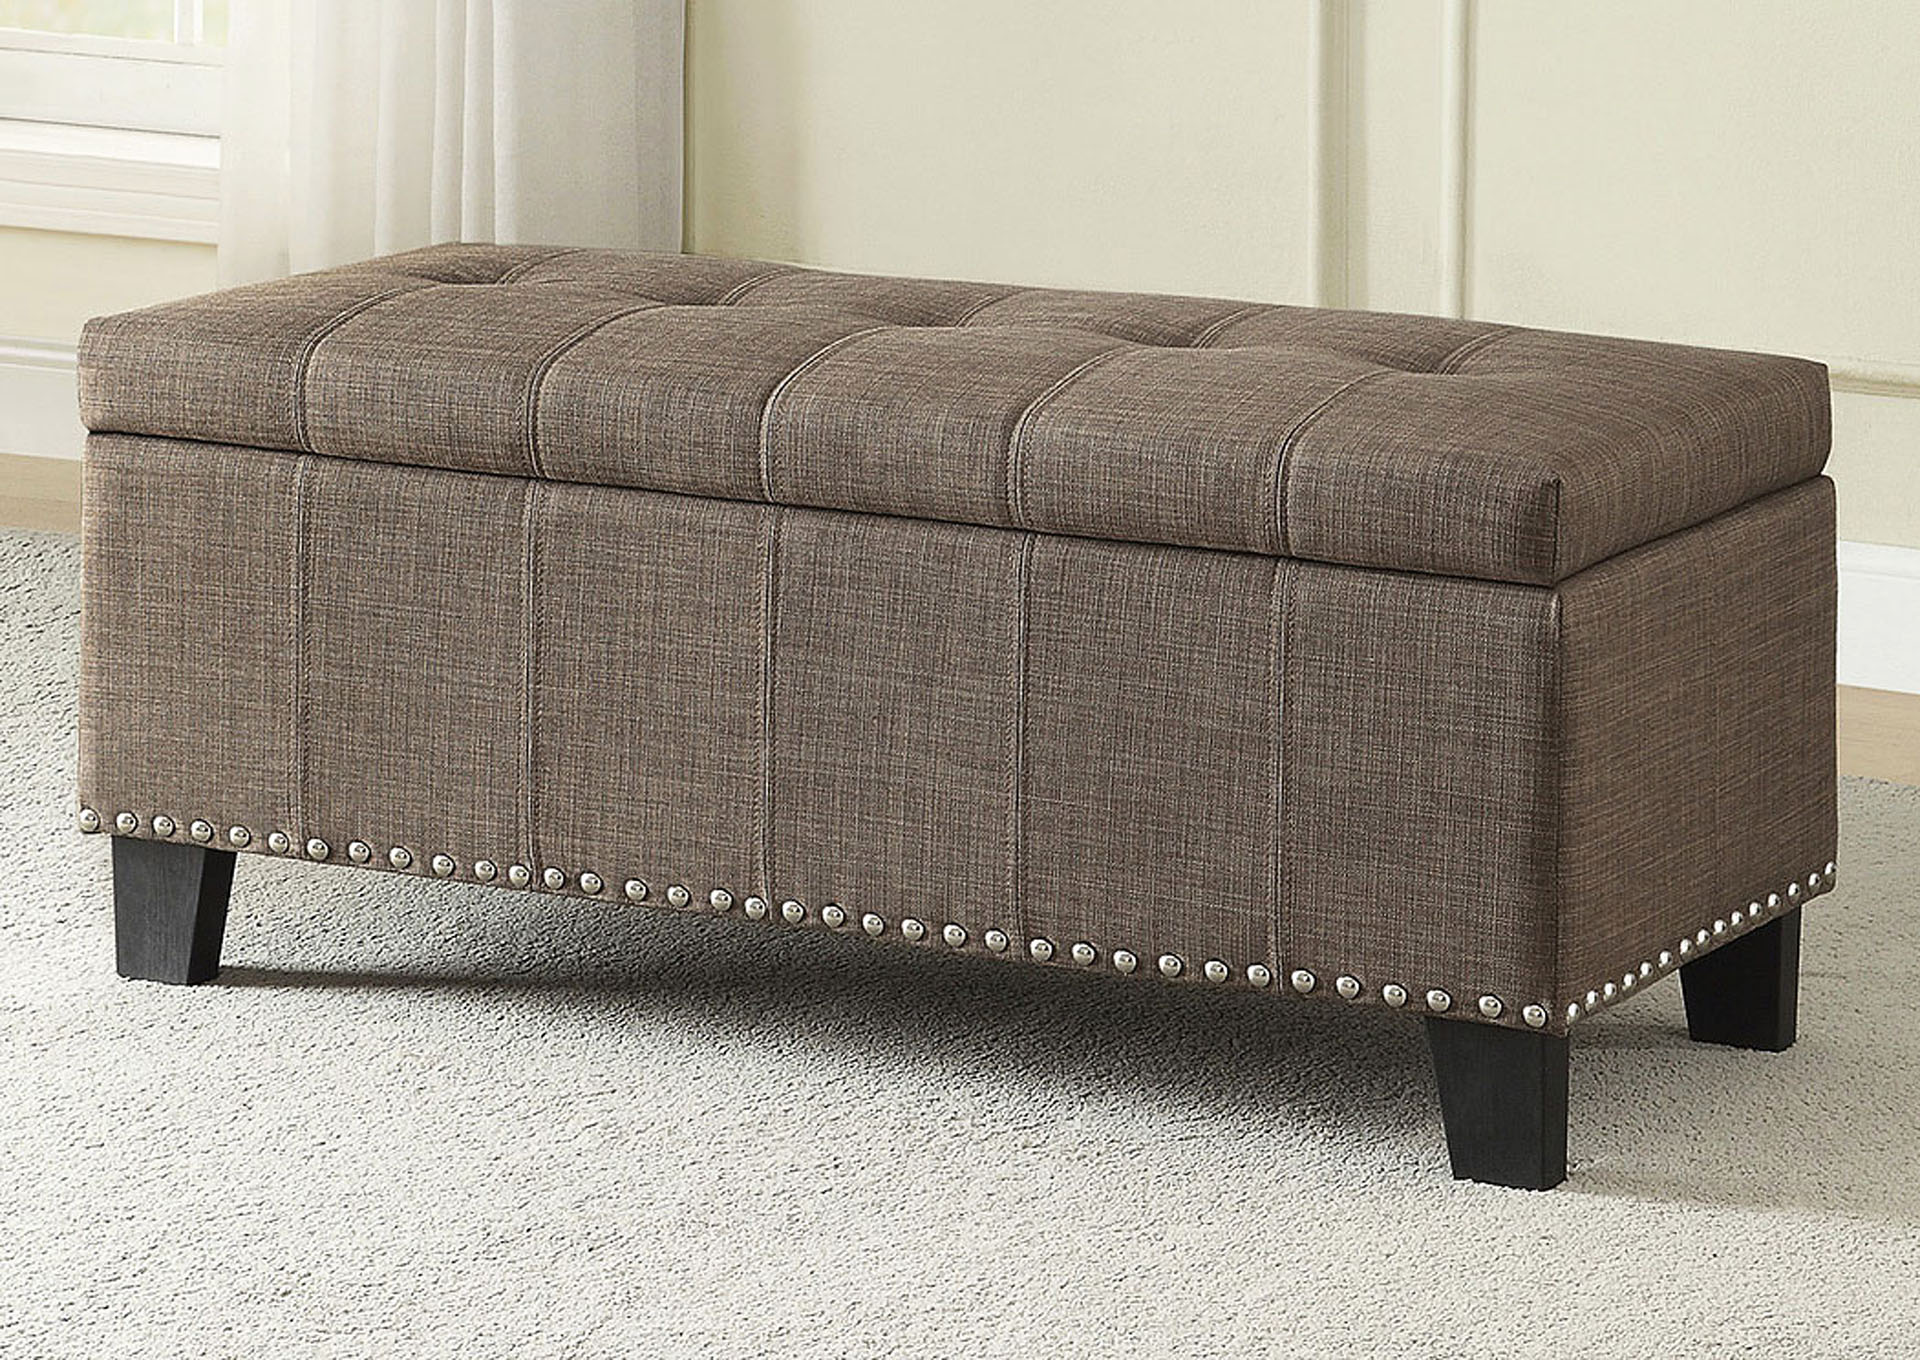 Lift-Top Storage Bench, Brown Fabric,Homelegance